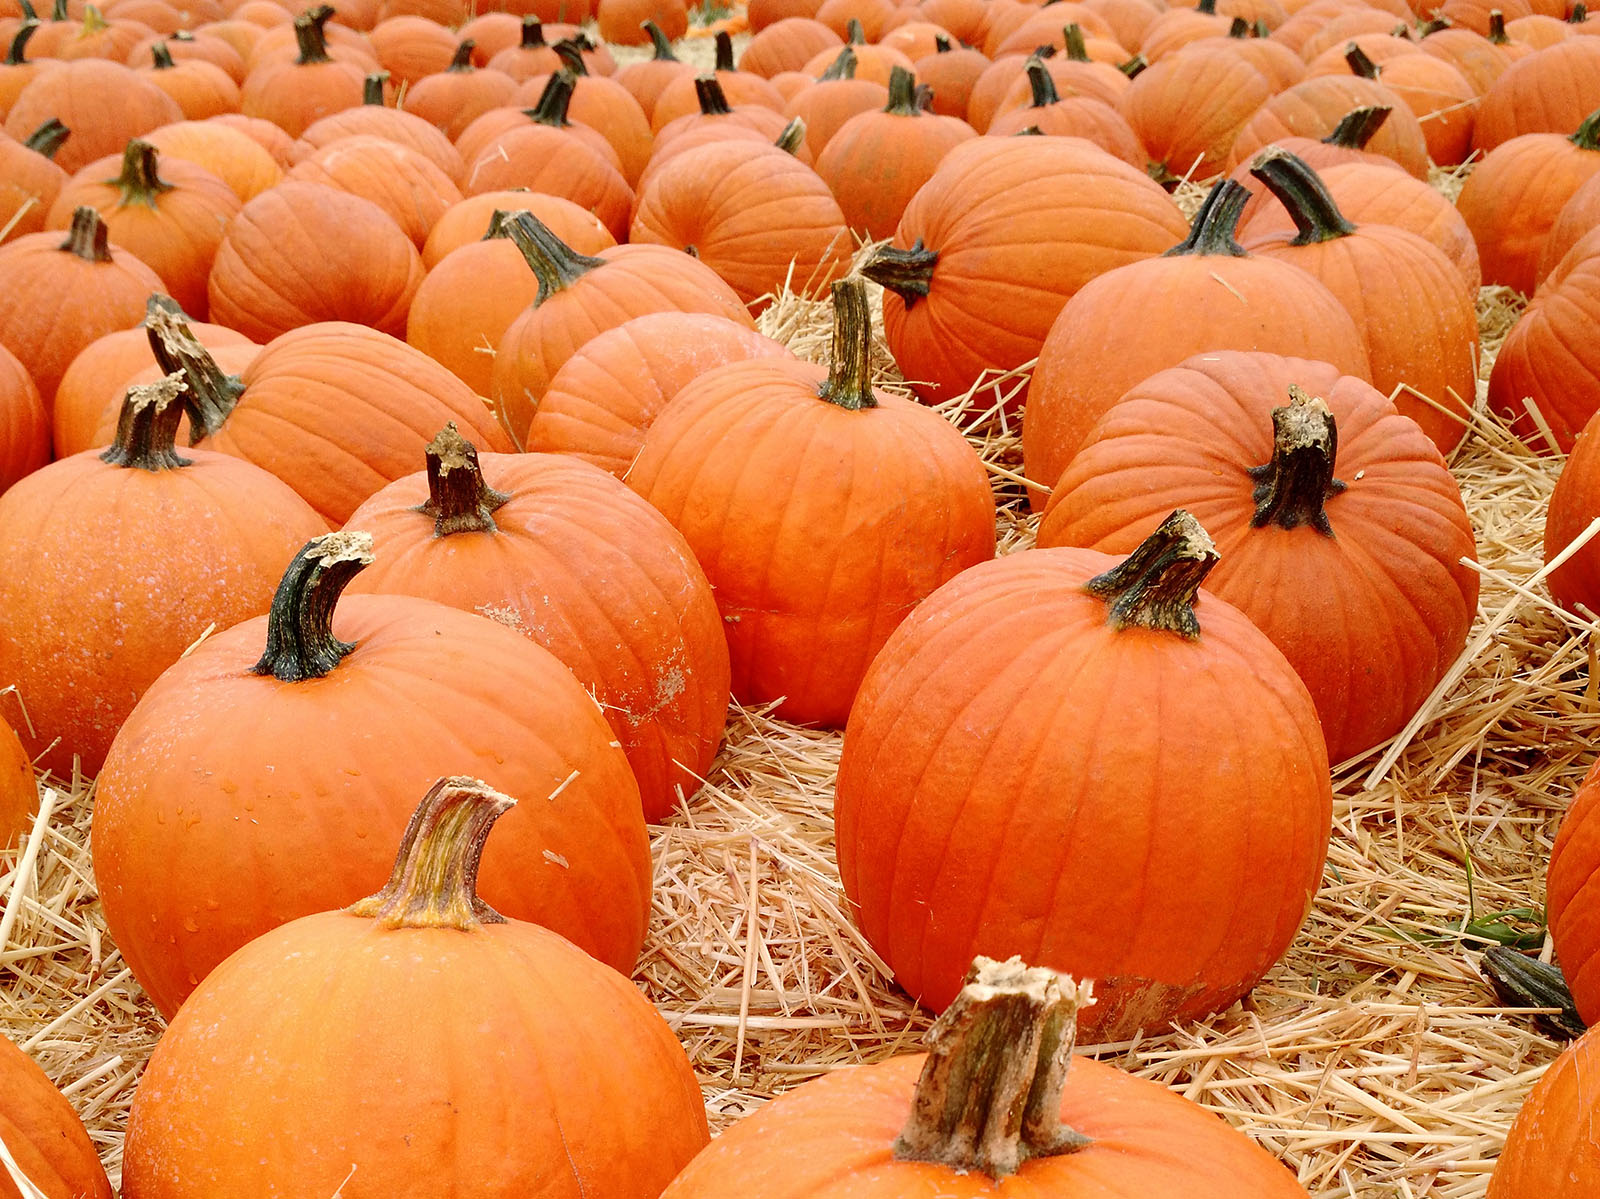 https://qns.com/wp-content/uploads/2019/10/pic_PumpkinPatch.jpg